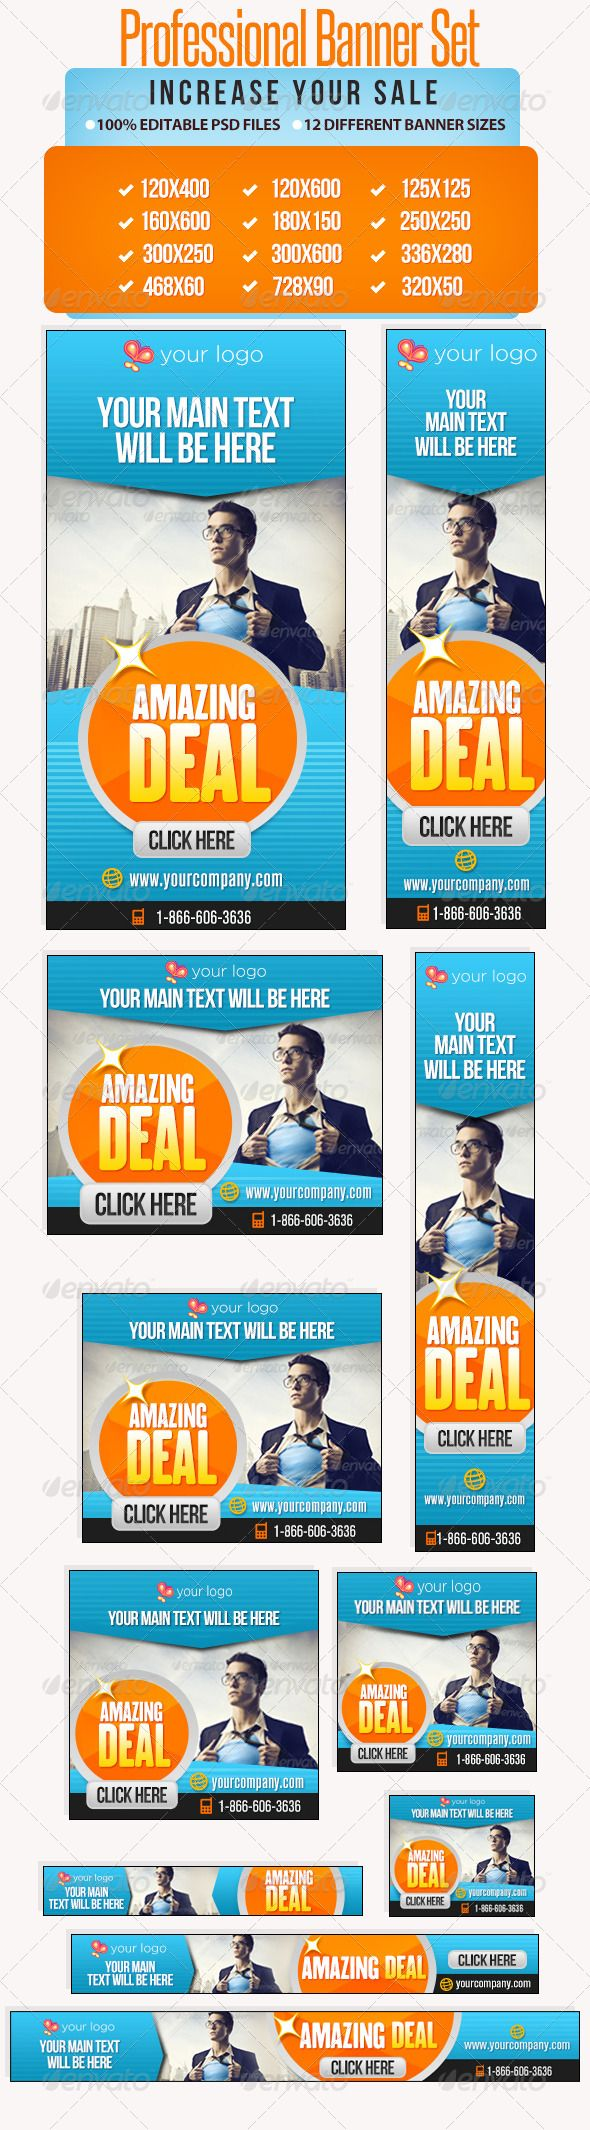 Professional Banner Set with Animation - 12 sizes  #GraphicRiver         Promote your offers or services with this great looking Banner Set.   12 awesome quality banner template PSD files ready for your products, campaigns, services and promotions. Each PSD files are layered and fully organized. You can use this banners for google adwords too. ( All google adwords banner sizes included)   The package also contains a help file & Editable PSDs.   PSD files come with Animated Frames.  …